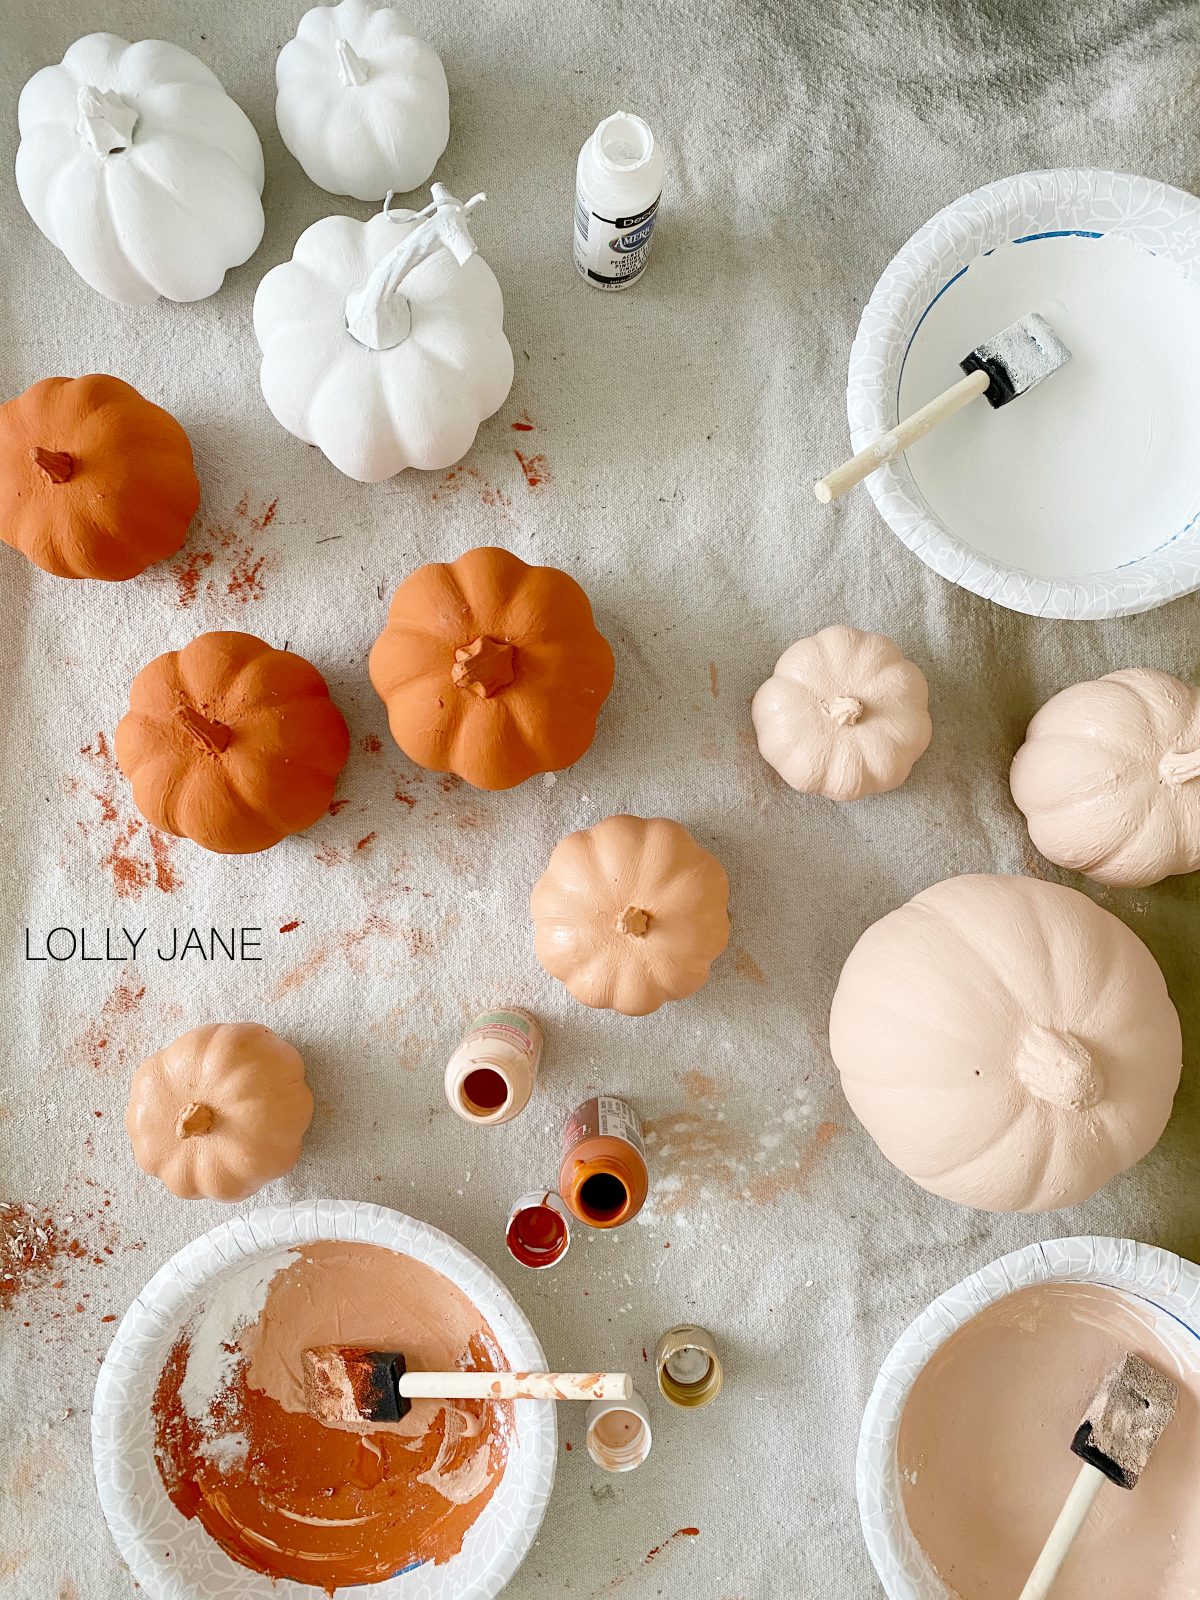 DIY Baking Powder Painted Pumpkins! So cute and easy! #diypumpkins #paintedpumpkins #bakingpowderpumpkins #falldecor #falldecoration #fallcraft #fallcrafts #pumpkincrafts #pumpkincraft #pumpkin #dollarstorecrafts